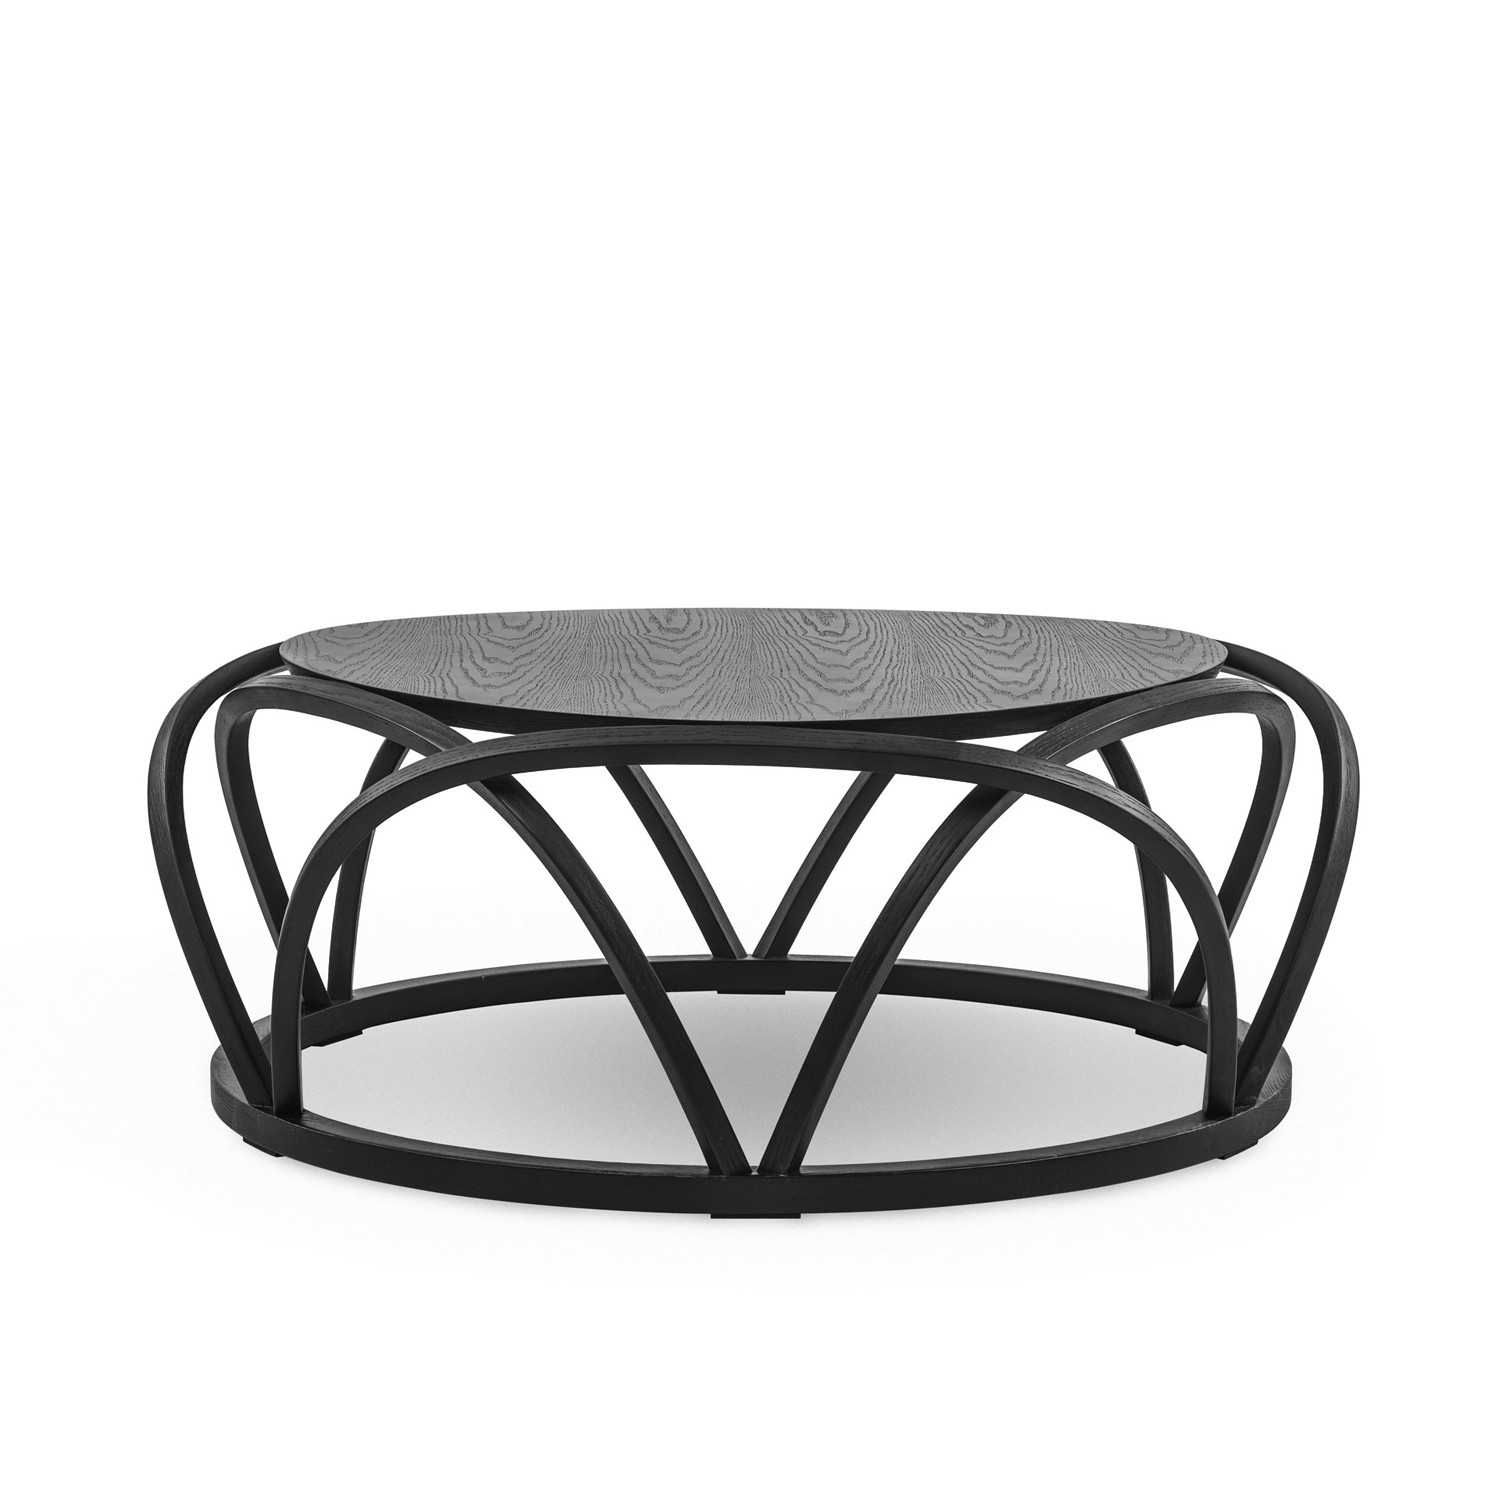 Ming Coffee Table Stellar Works Touch of Modern